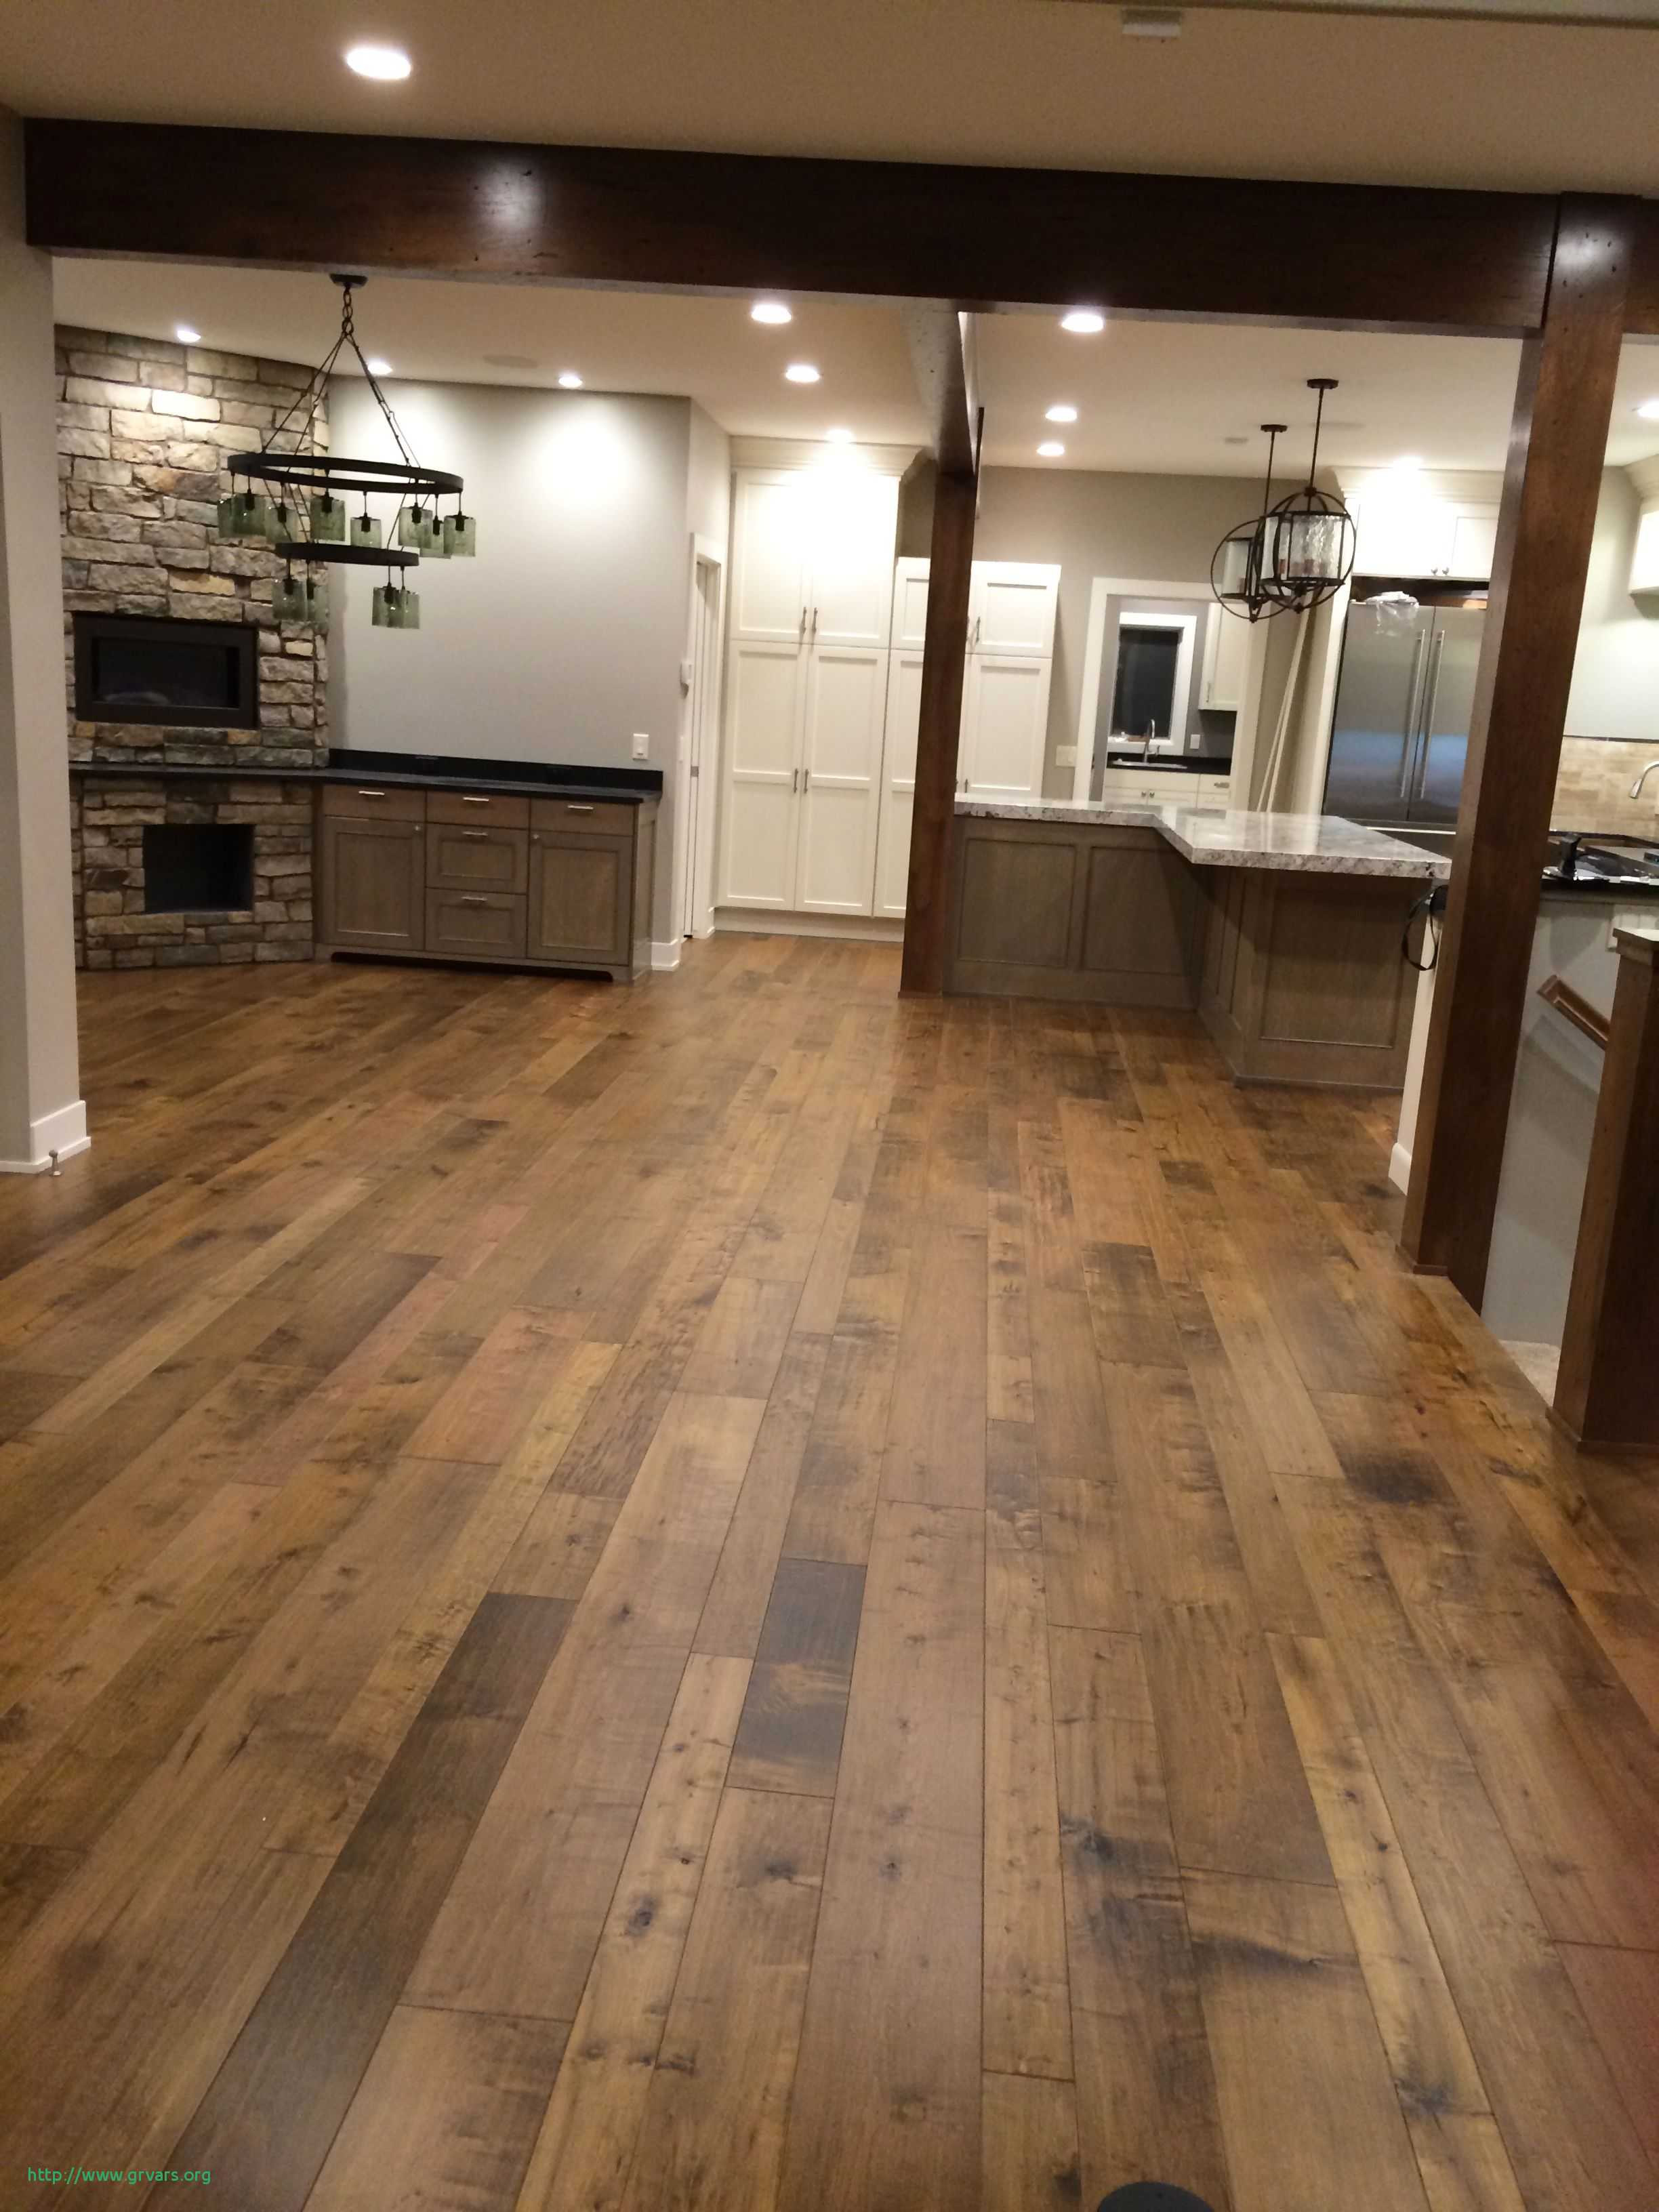 hardwood floor transition to carpet of 17 meilleur de how to install carpet on hardwood floor ideas blog in how to install carpet on hardwood floor beau monterey hardwood collection rooms and spaces